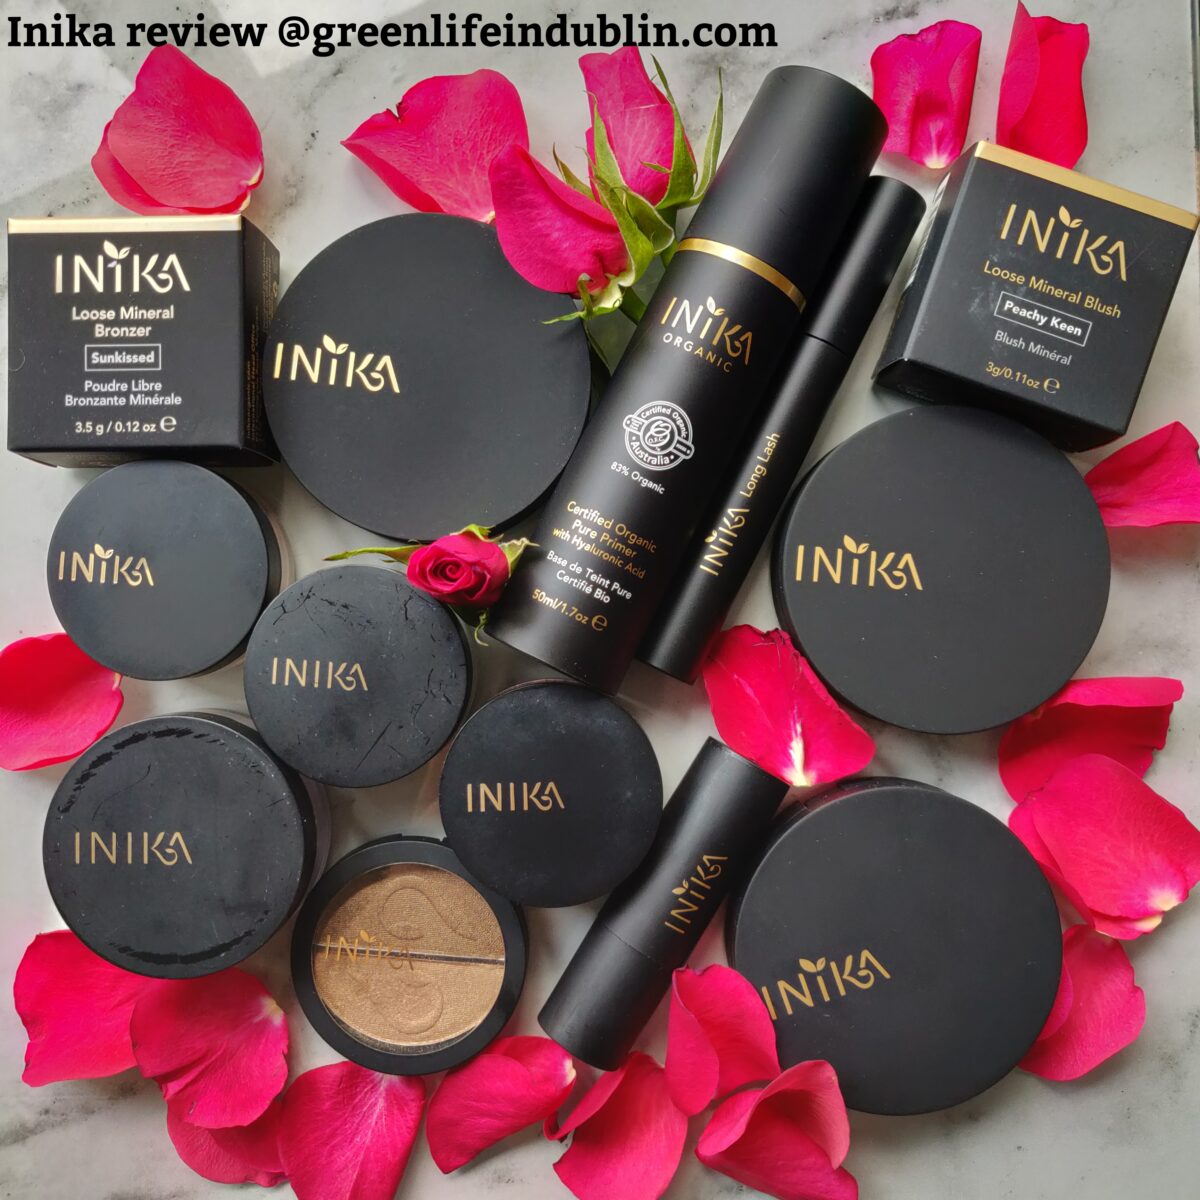 Inika Review [AD]